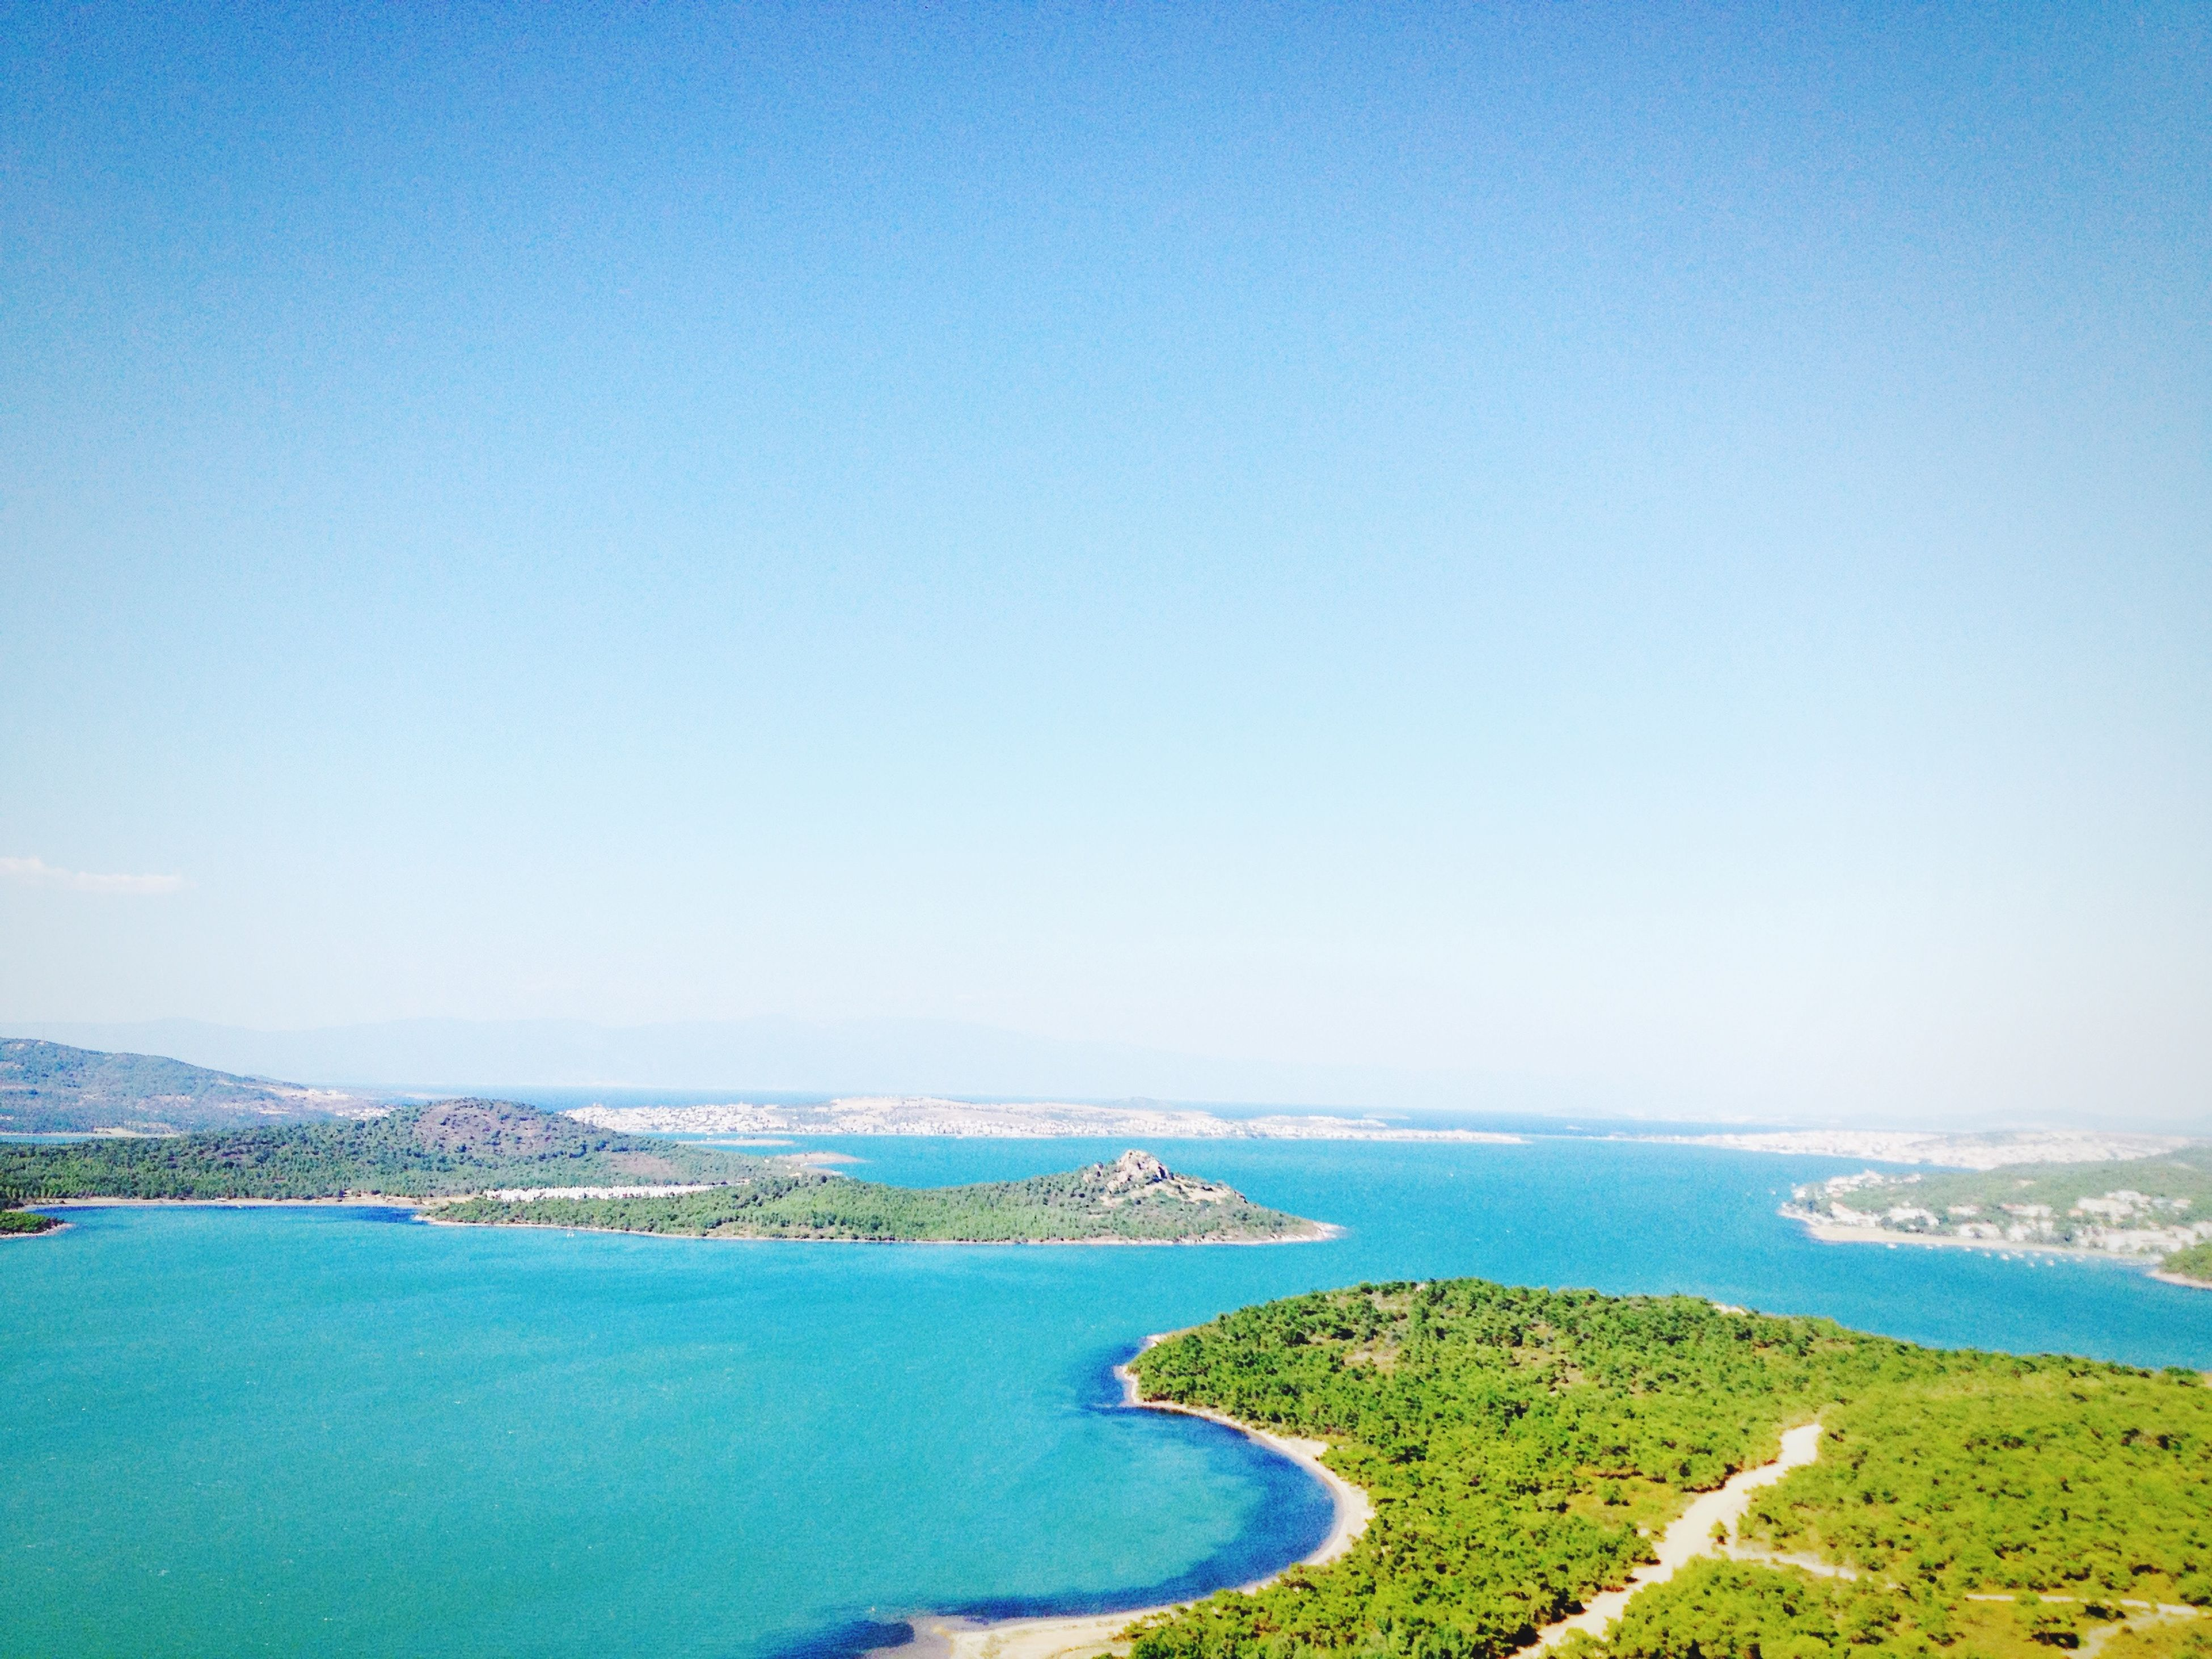 blue, water, sea, clear sky, copy space, tranquil scene, scenics, tranquility, beauty in nature, nature, horizon over water, coastline, high angle view, idyllic, day, beach, outdoors, shore, ocean, landscape